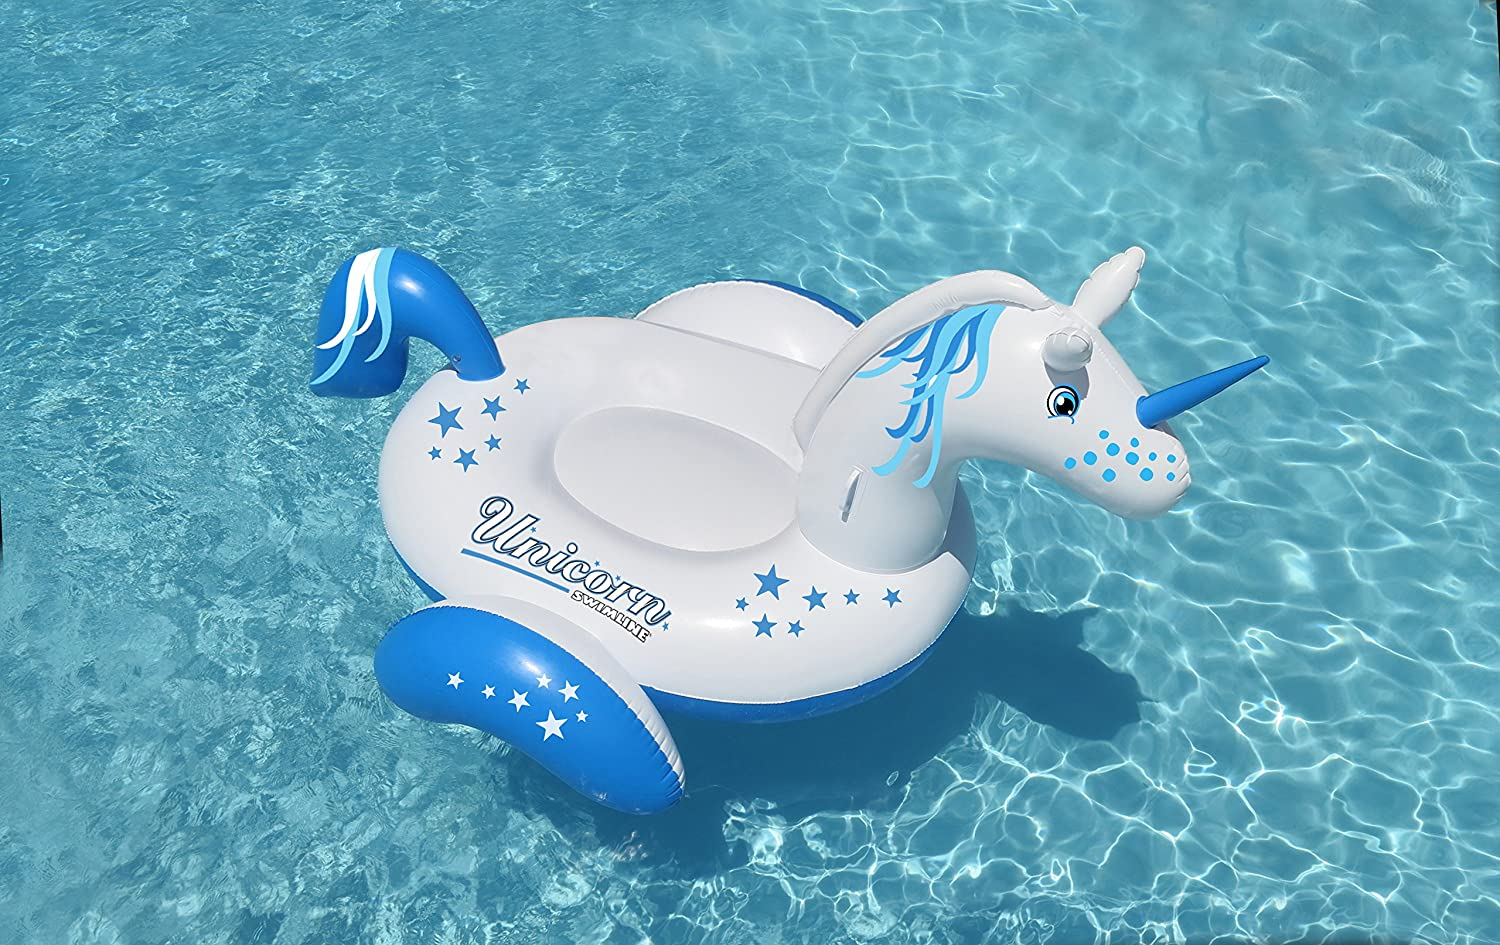 Amazon.com: Swimline gigante unicornio piscina Flotador ...